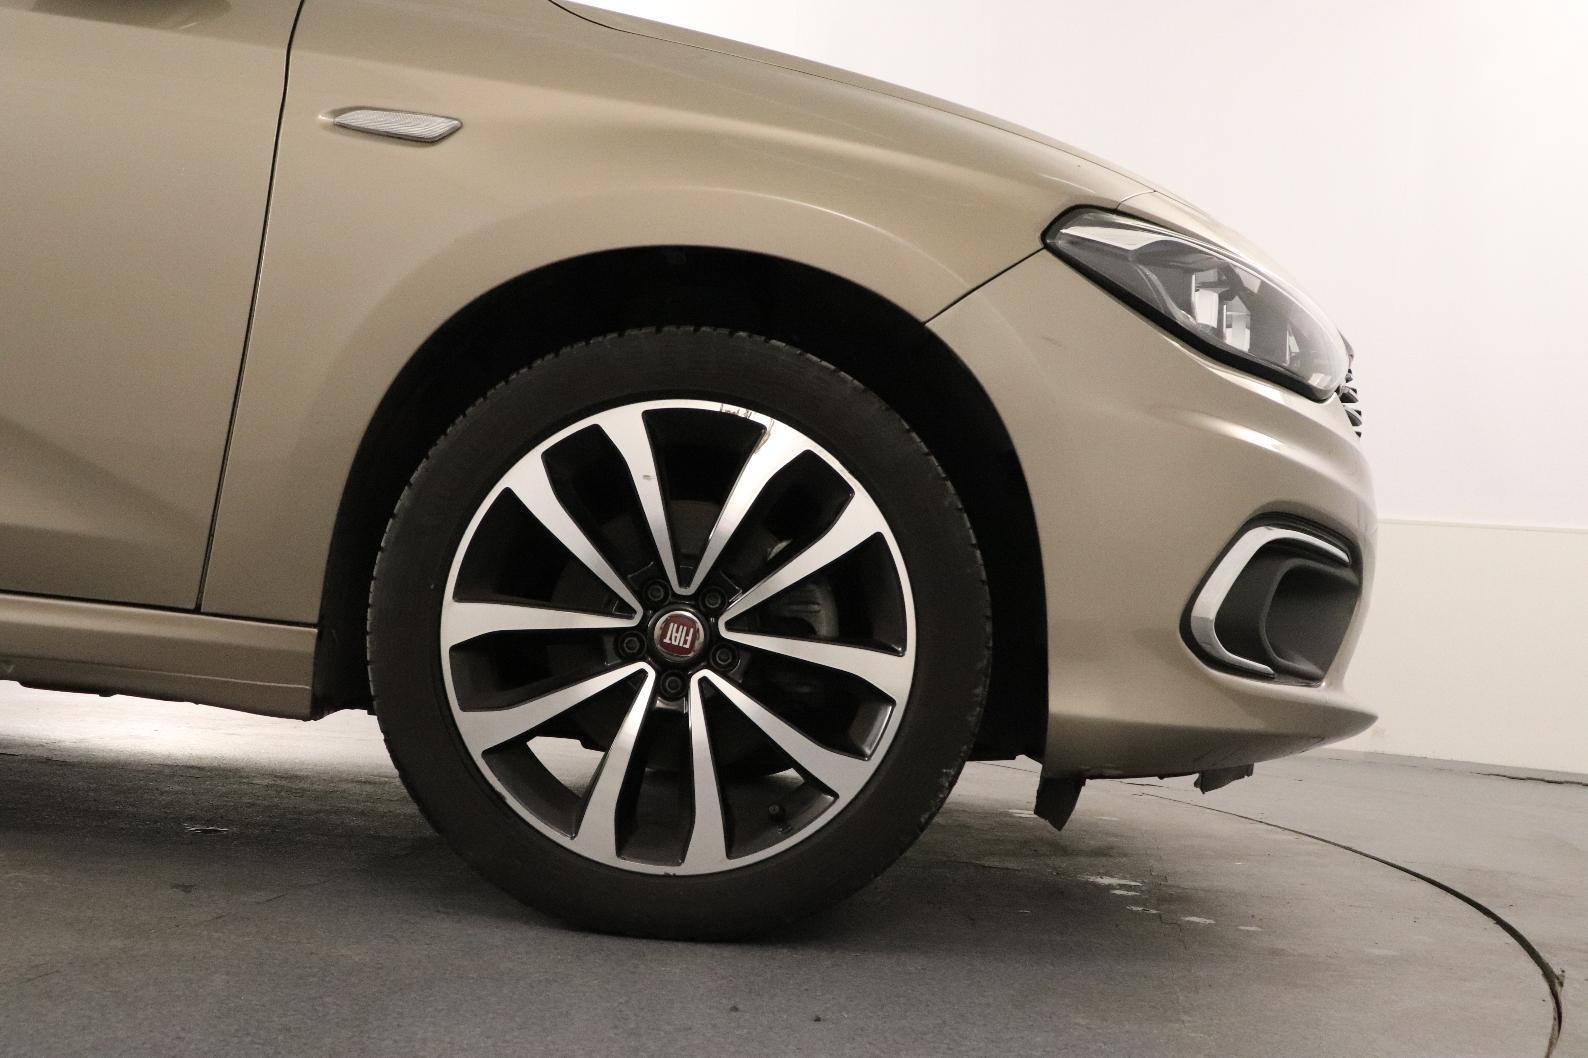 FIAT TIPO 5 PORTES Tipo 5 Portes 1.6 MultiJet 120 ch Start/Stop Easy